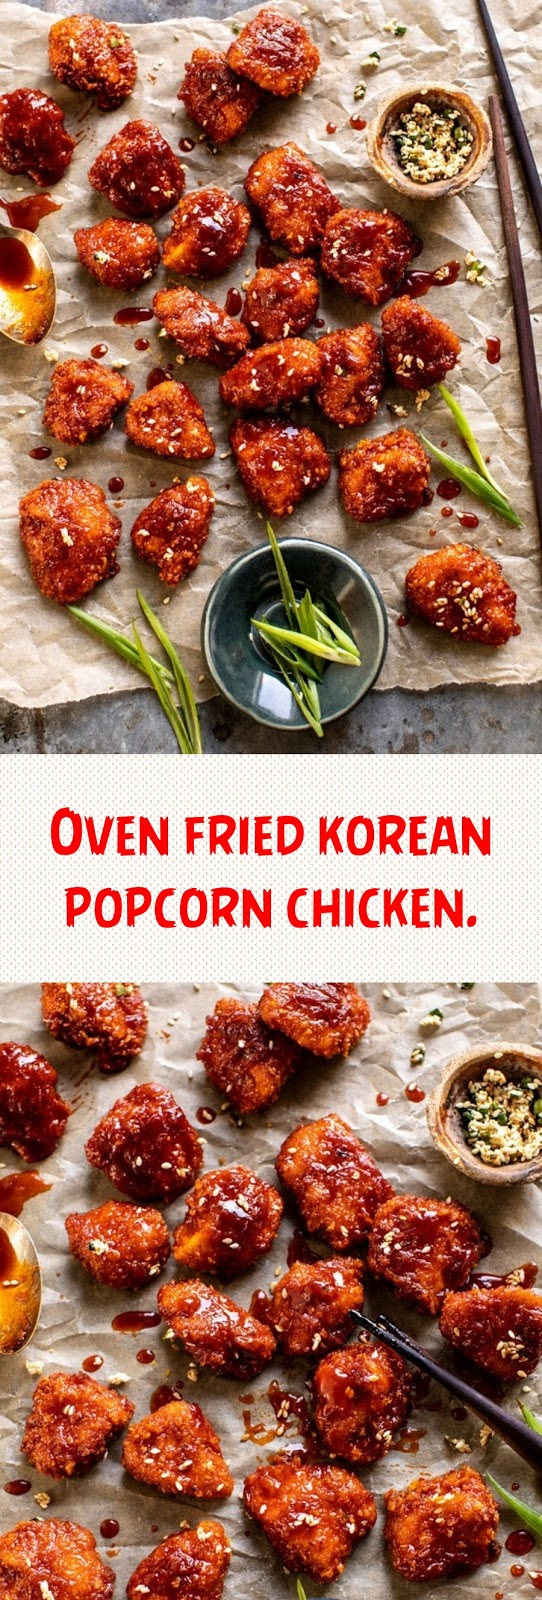 Oven fried korean popcorn chicken.